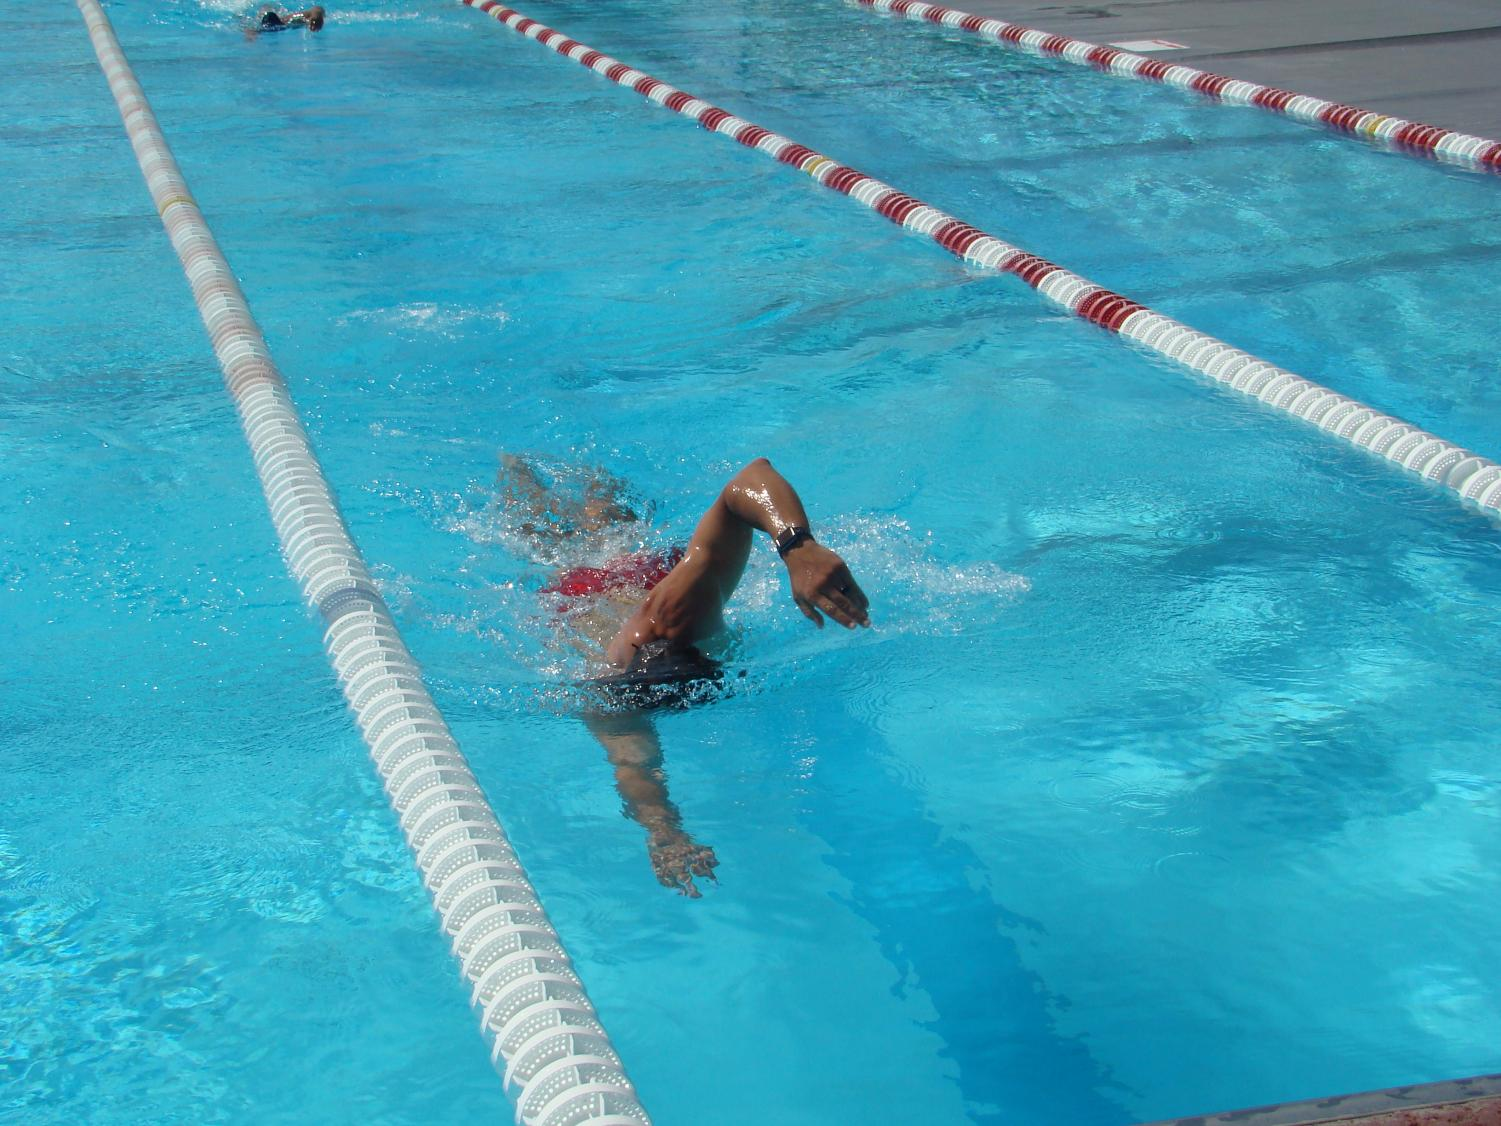 Mark Moon, the head coach of the men's and women's Bakersfield College swim teams, shows off his technique during the swimming relay.